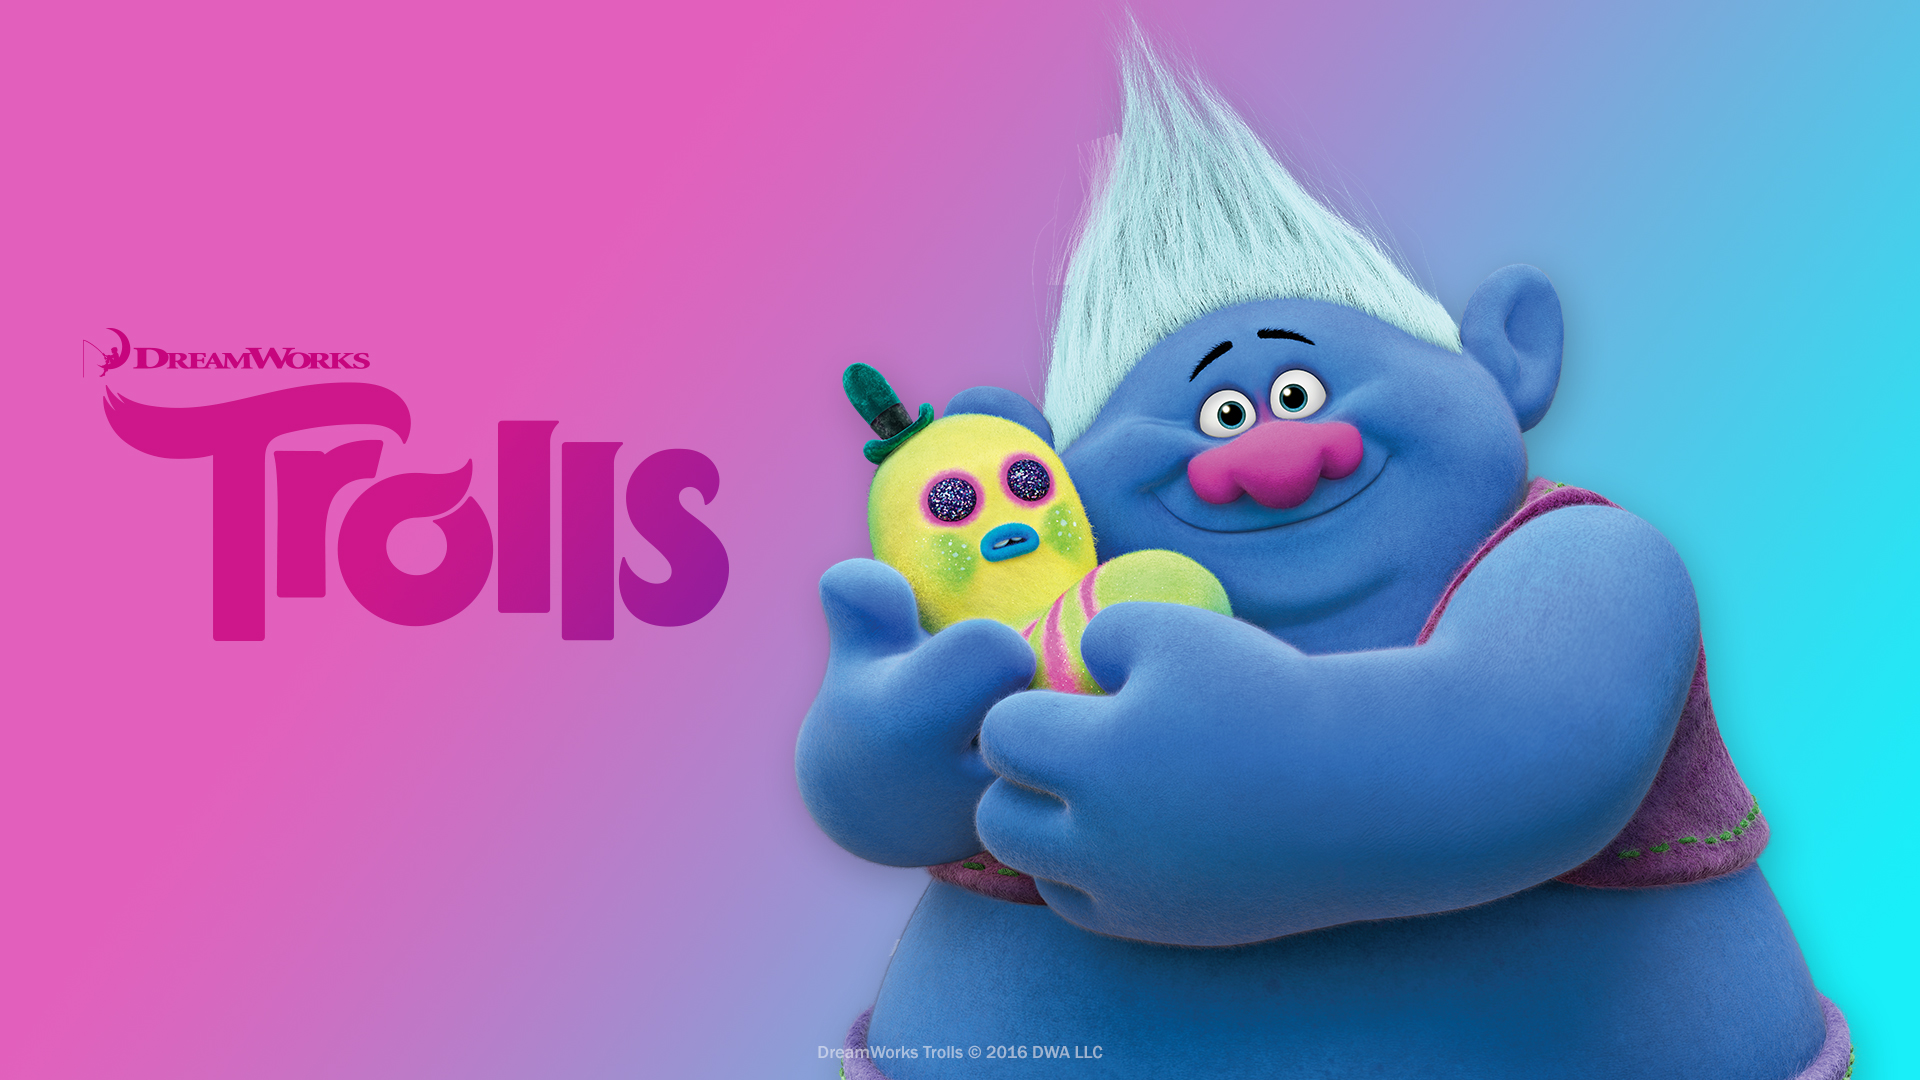 Trolls | DreamWorks Animation